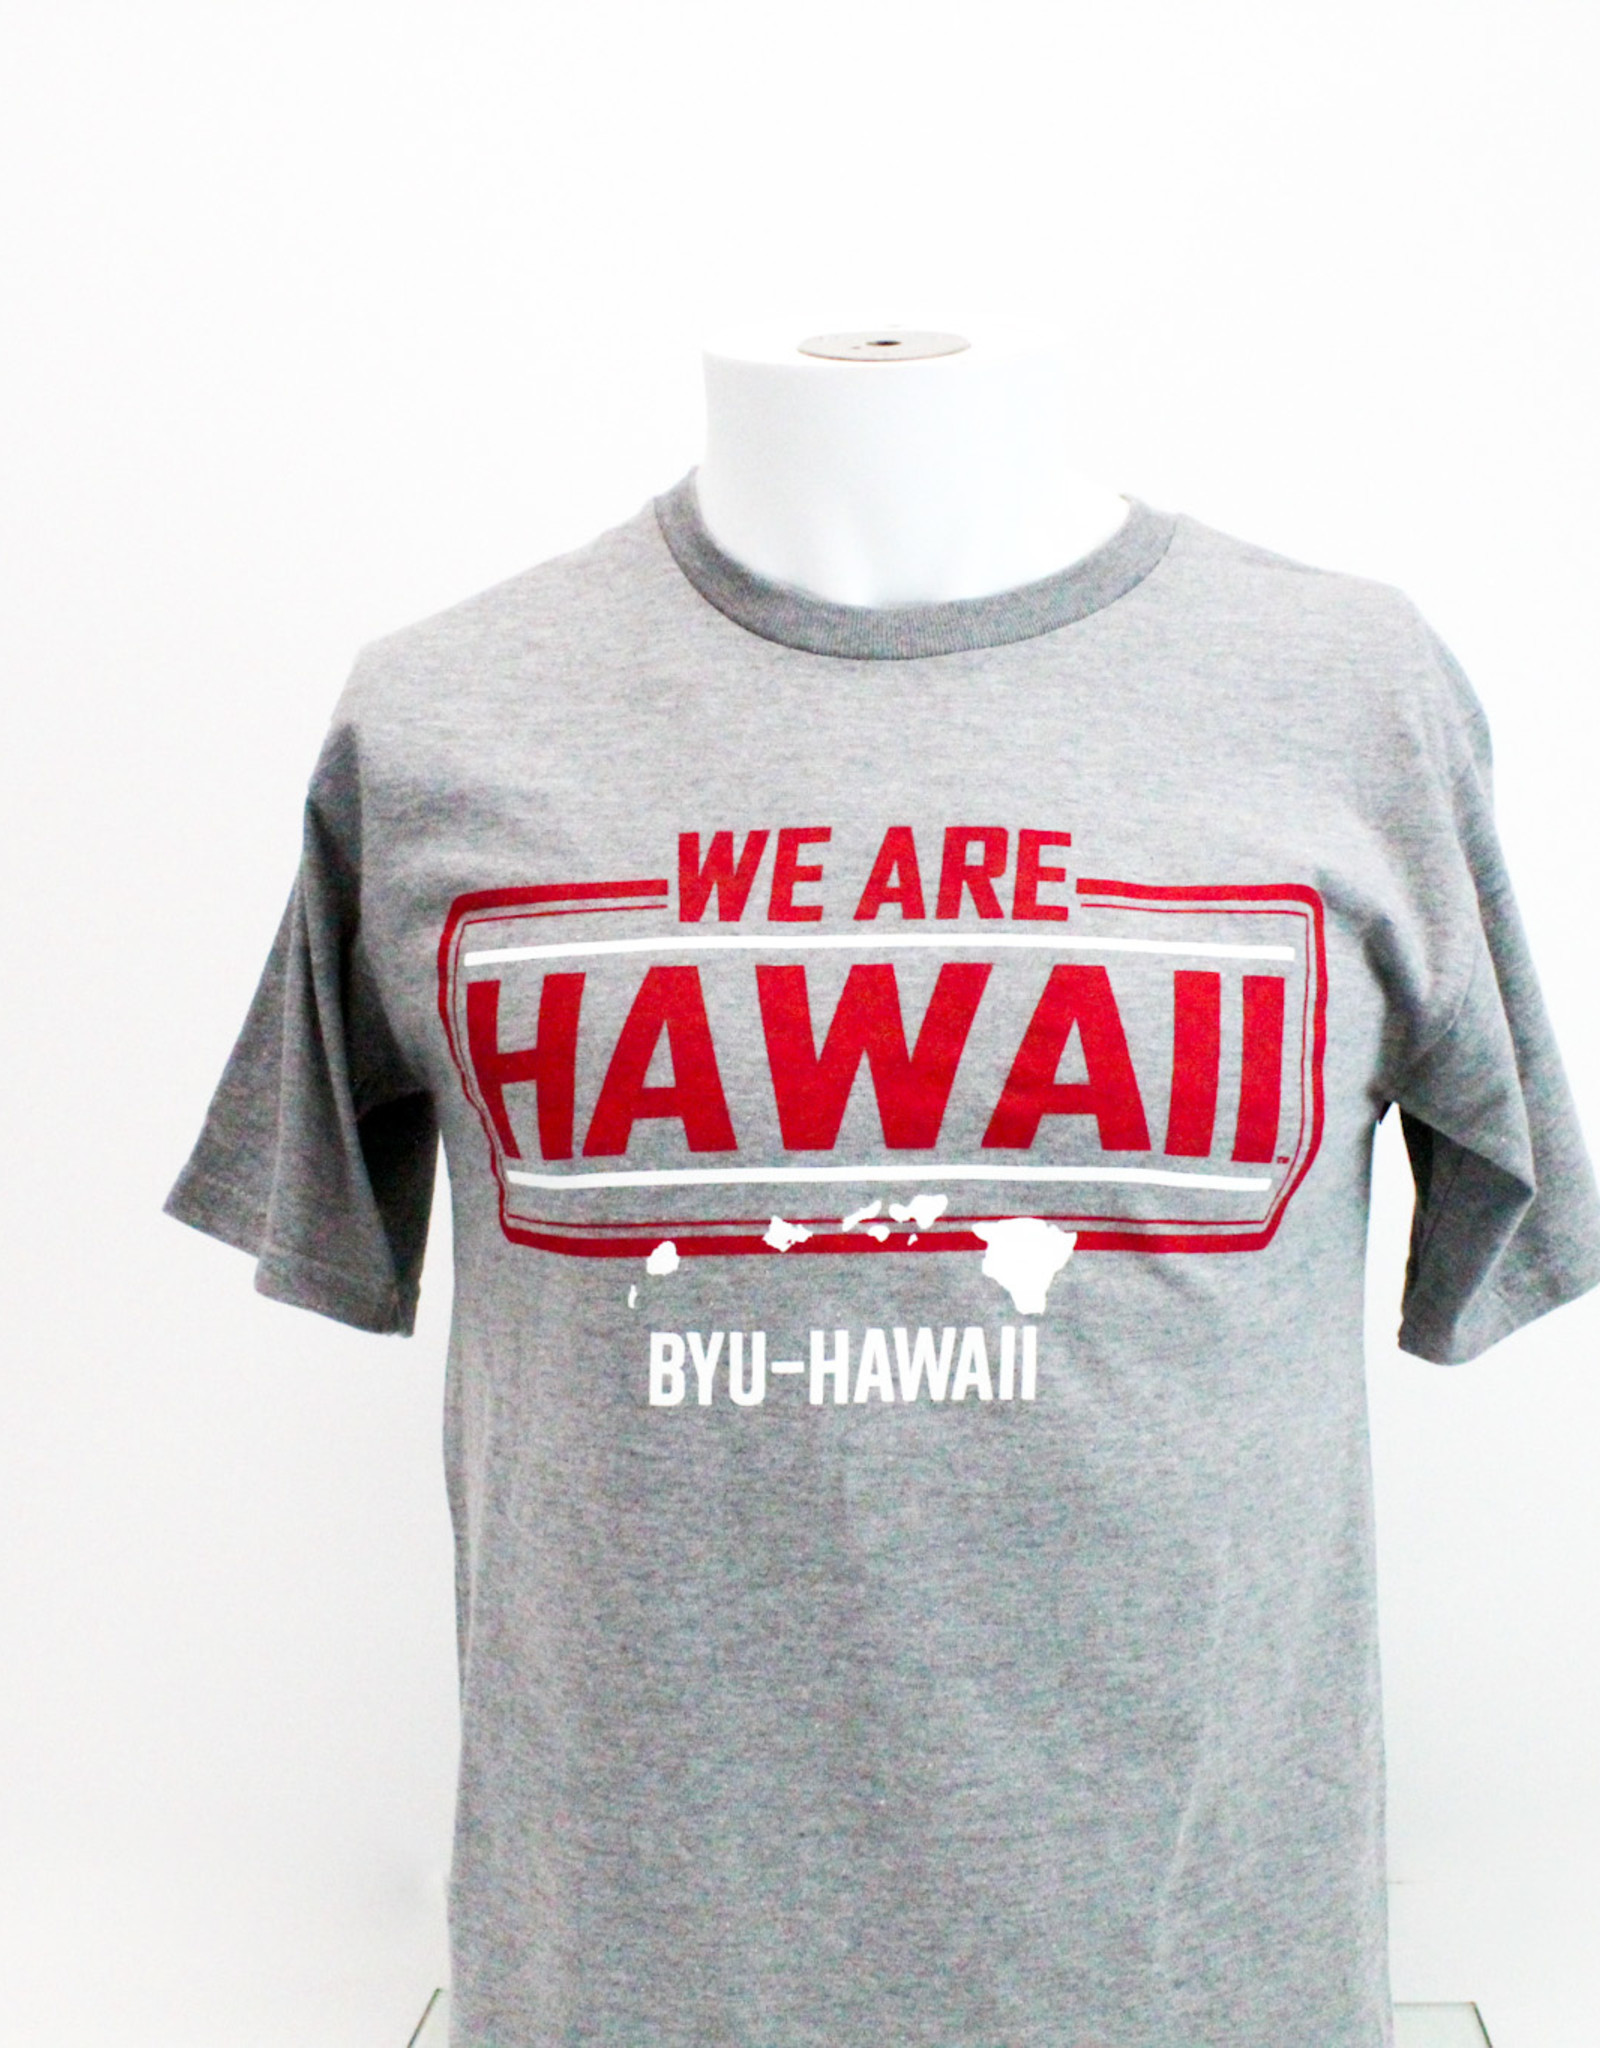 We are Hawaii Tee